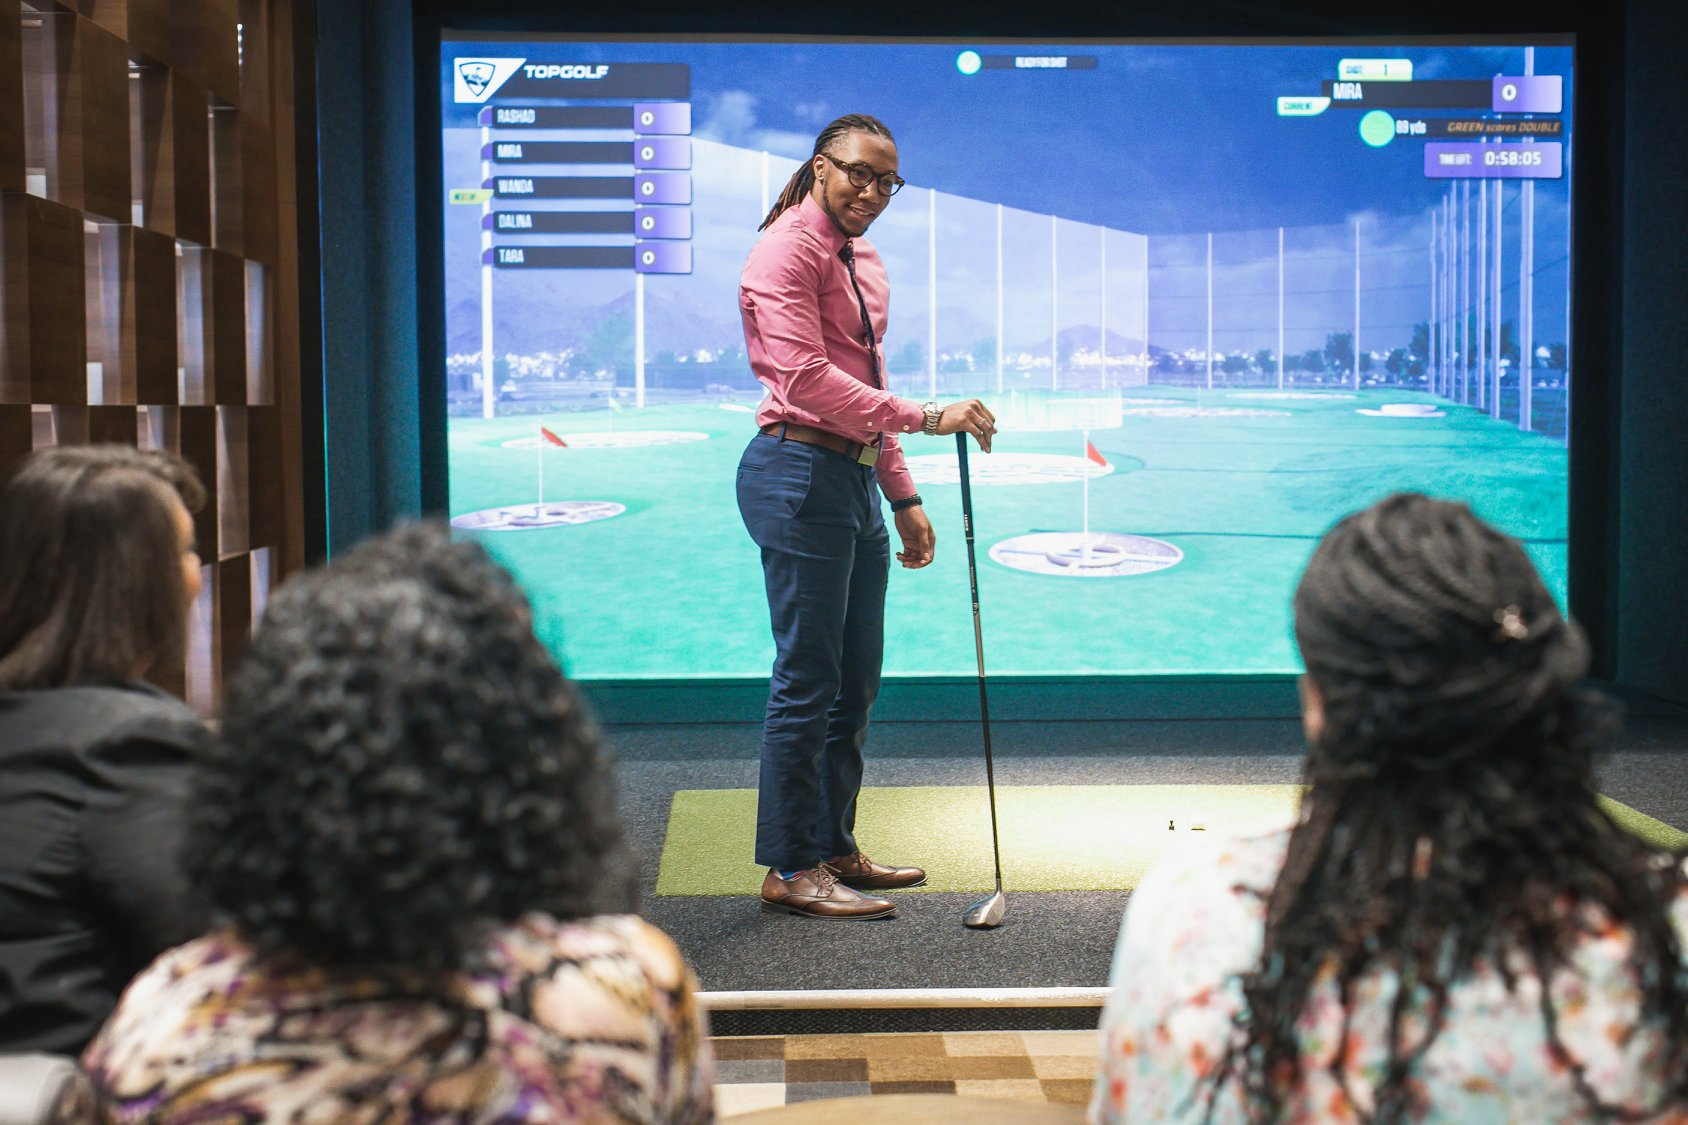 toppgolfpw